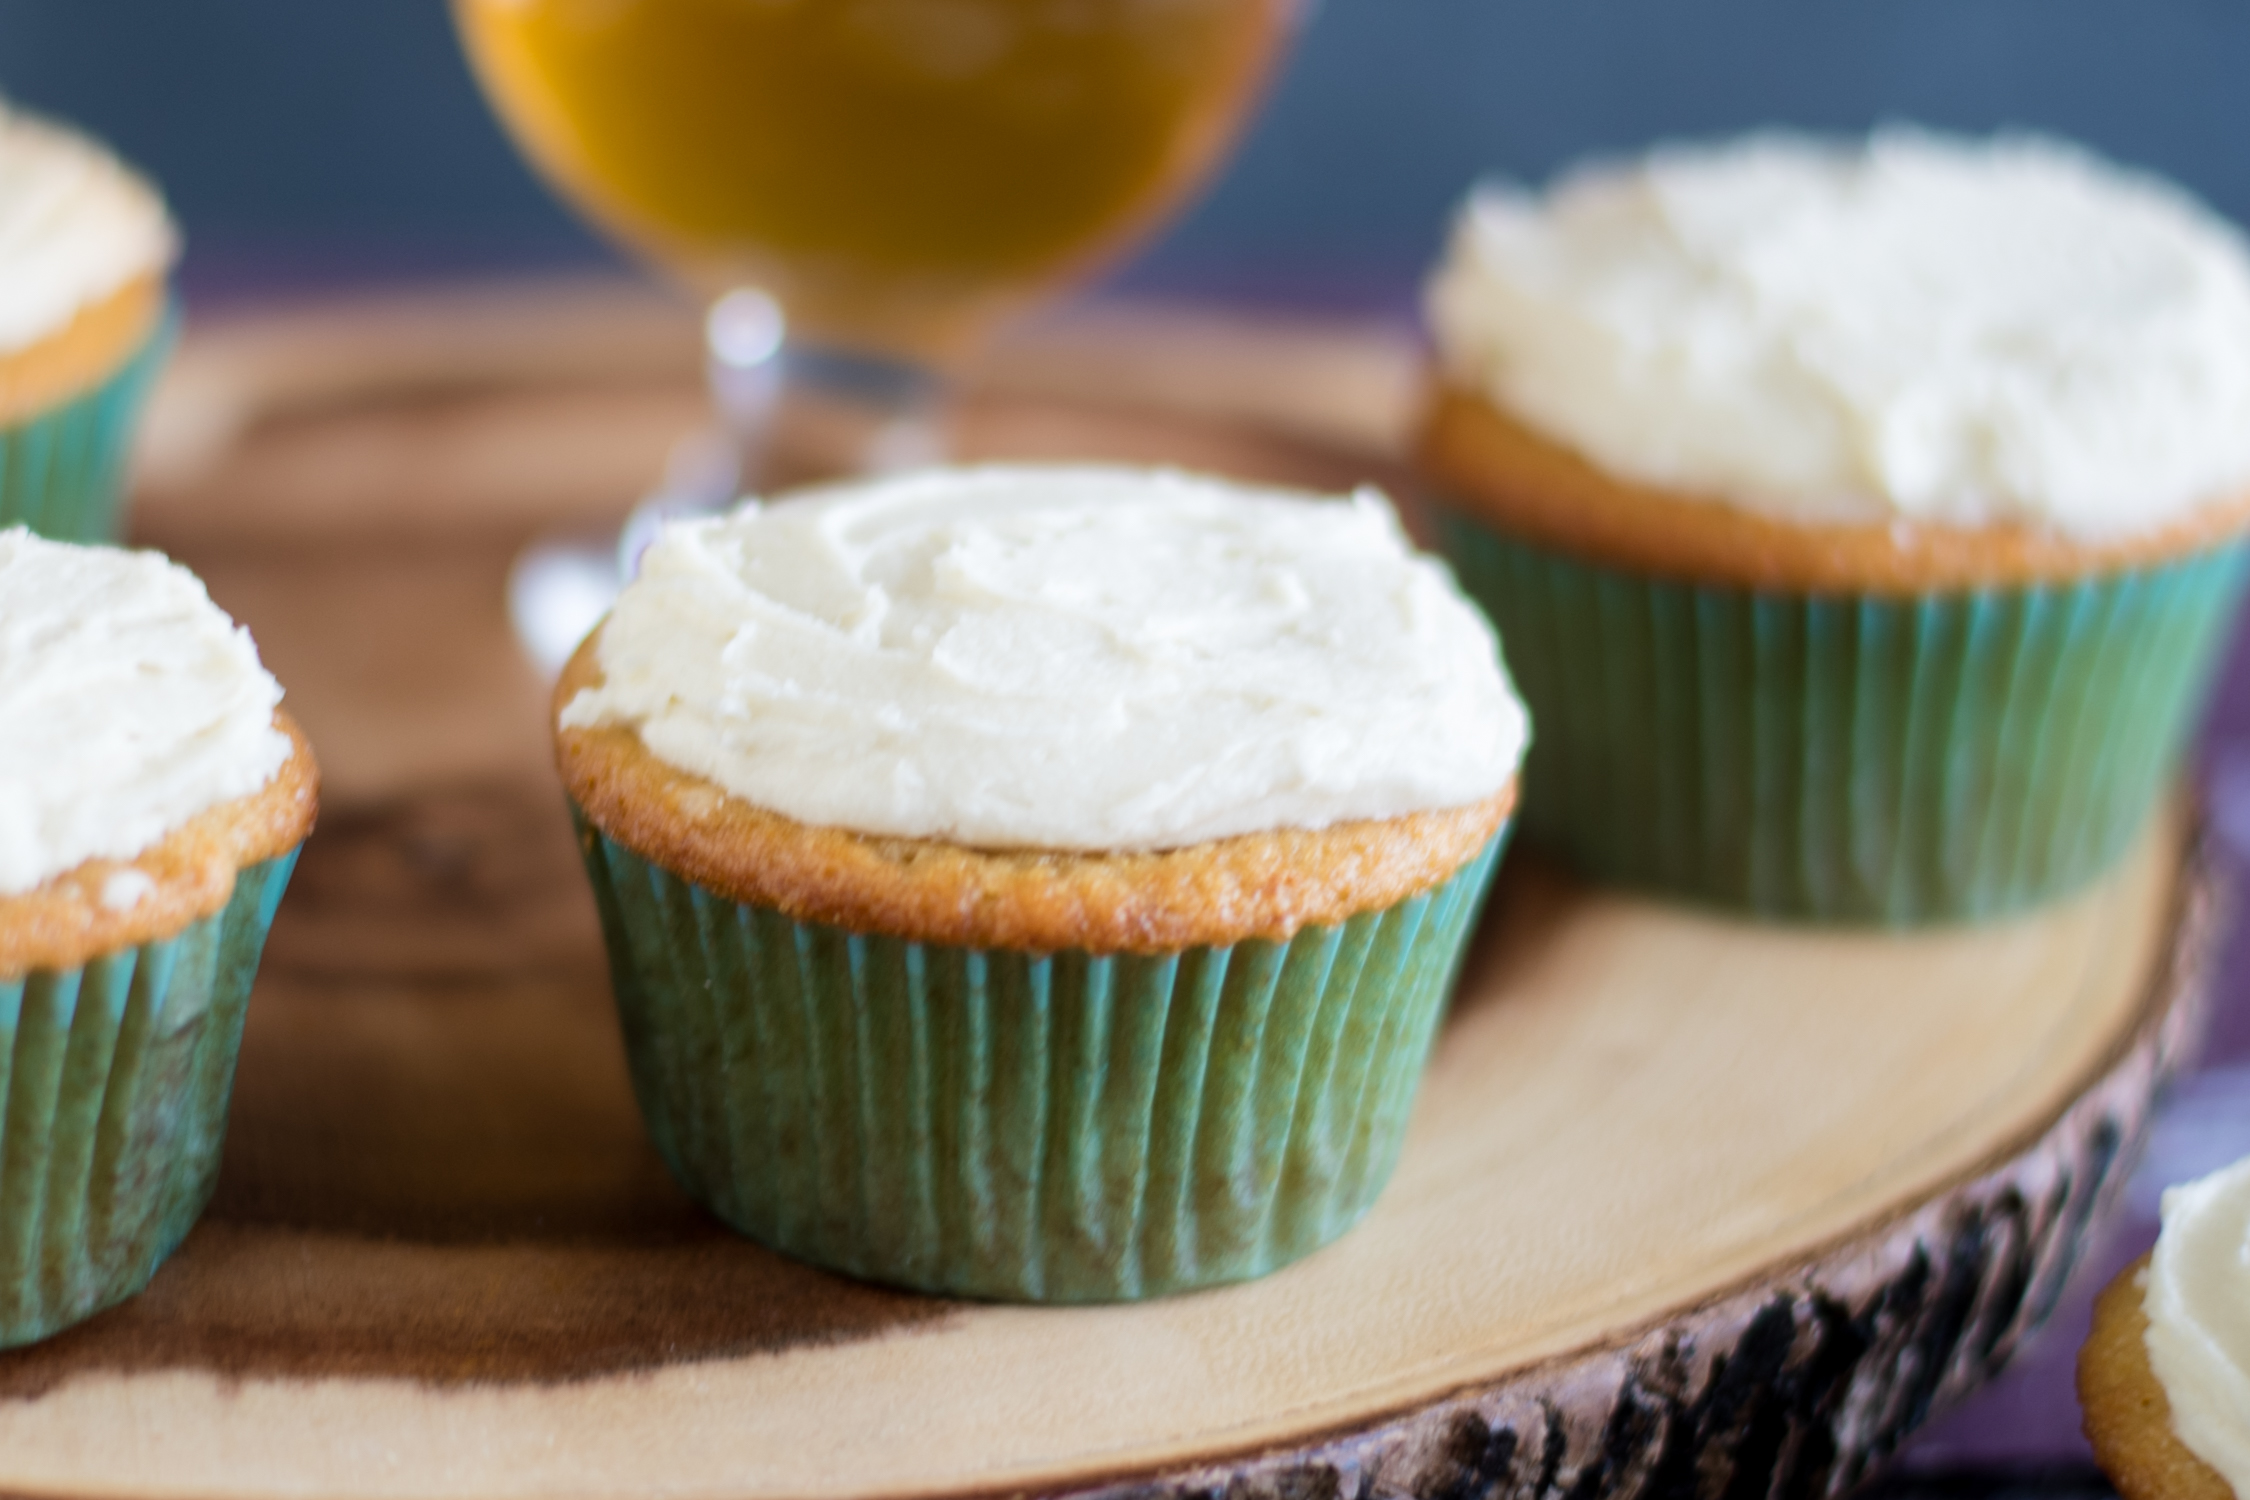 Oberon Orange Cupcakes are made with lots of fresh orange juice and zest, bringing out the citrus notes of the Oberon wheat ale. #beer #cupcakes #dessert #vegan #orange #spring #easter #summer #dessert